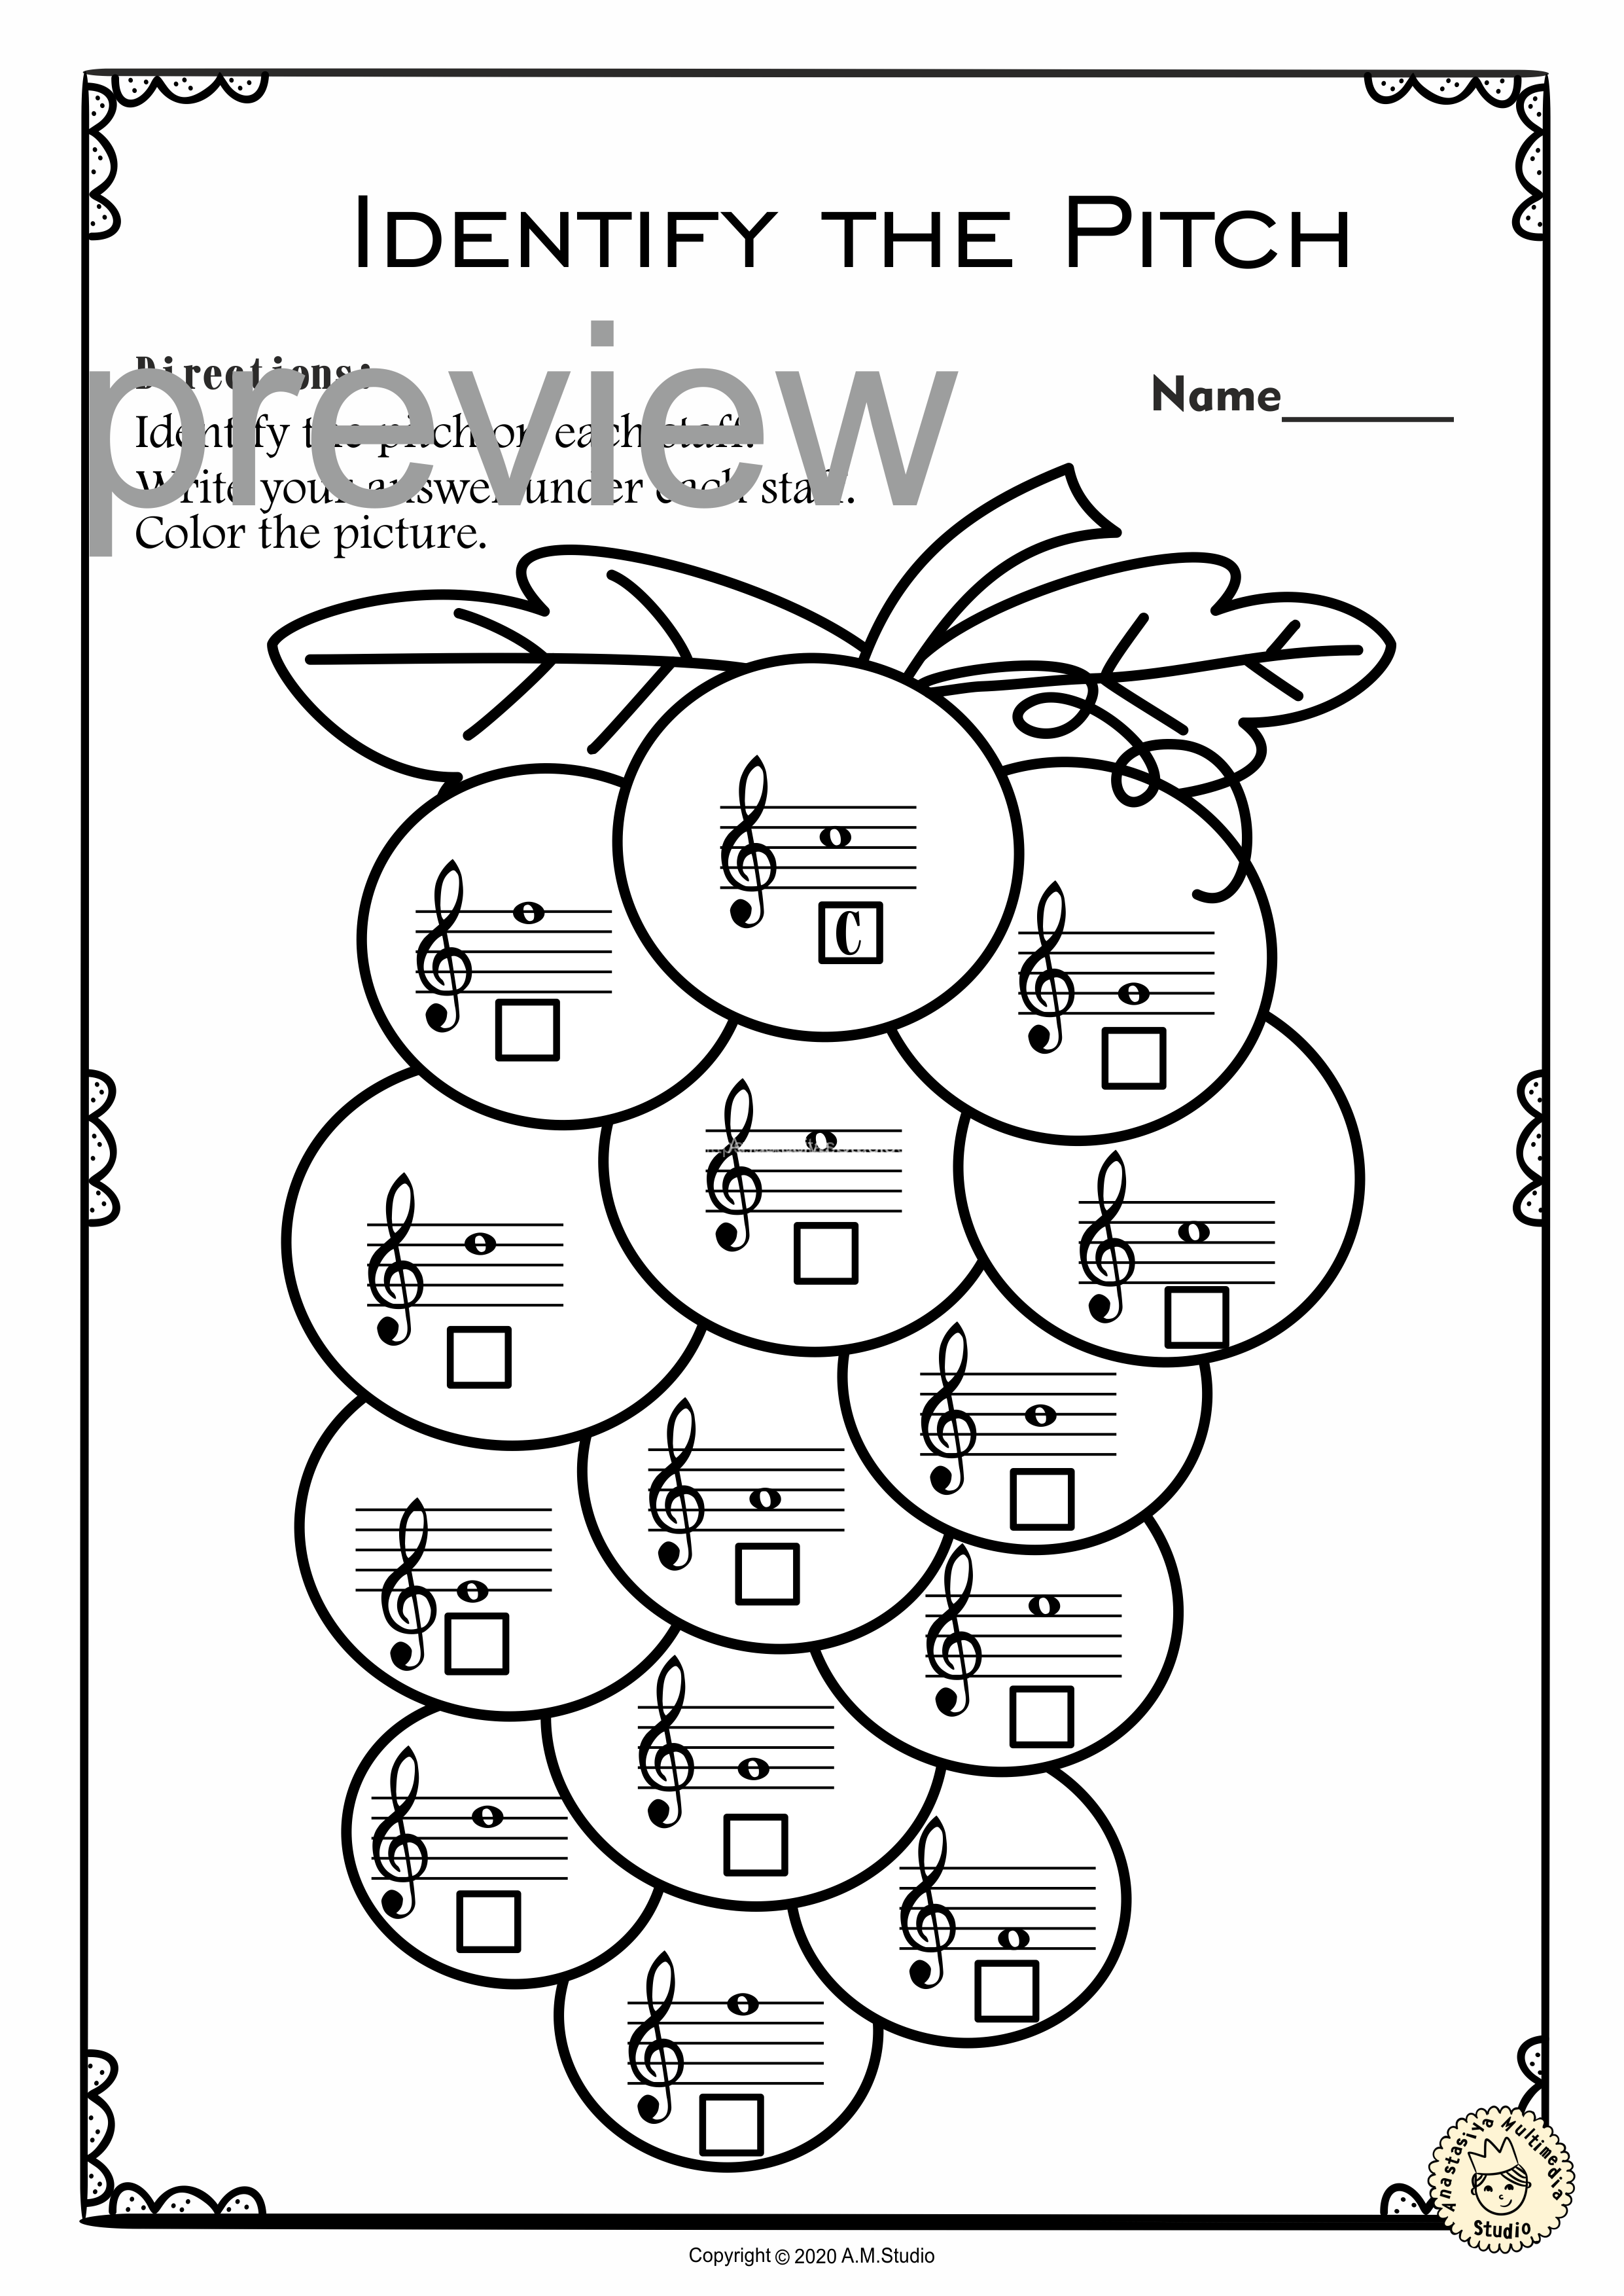 Treble Clef Note Naming Worksheets For Summer With Answers